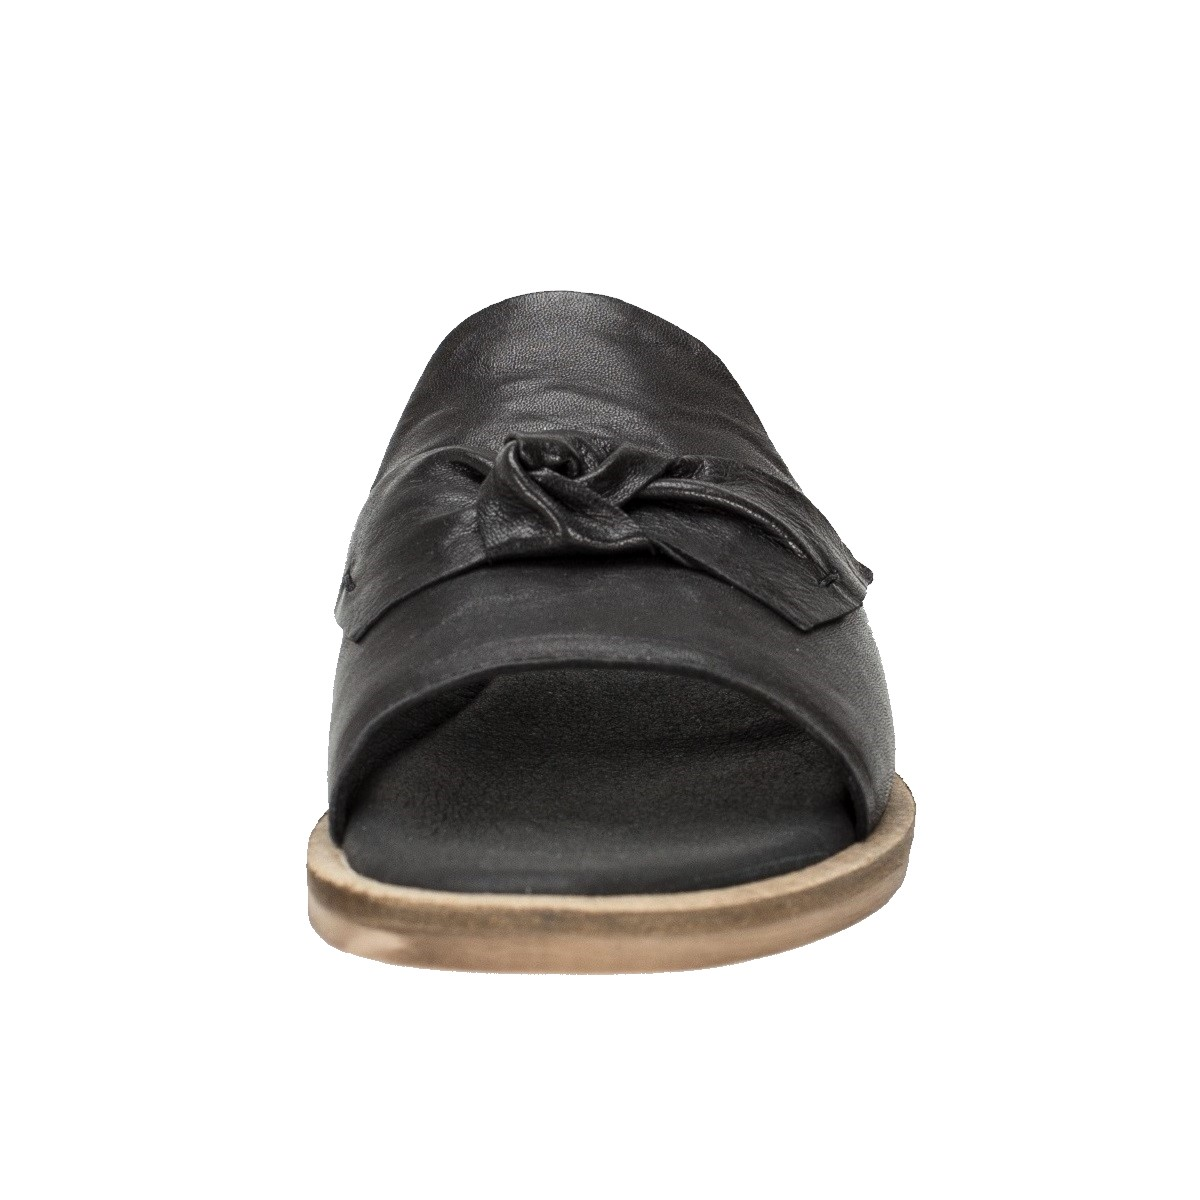 camel active 897.70.01 Heat 70 black